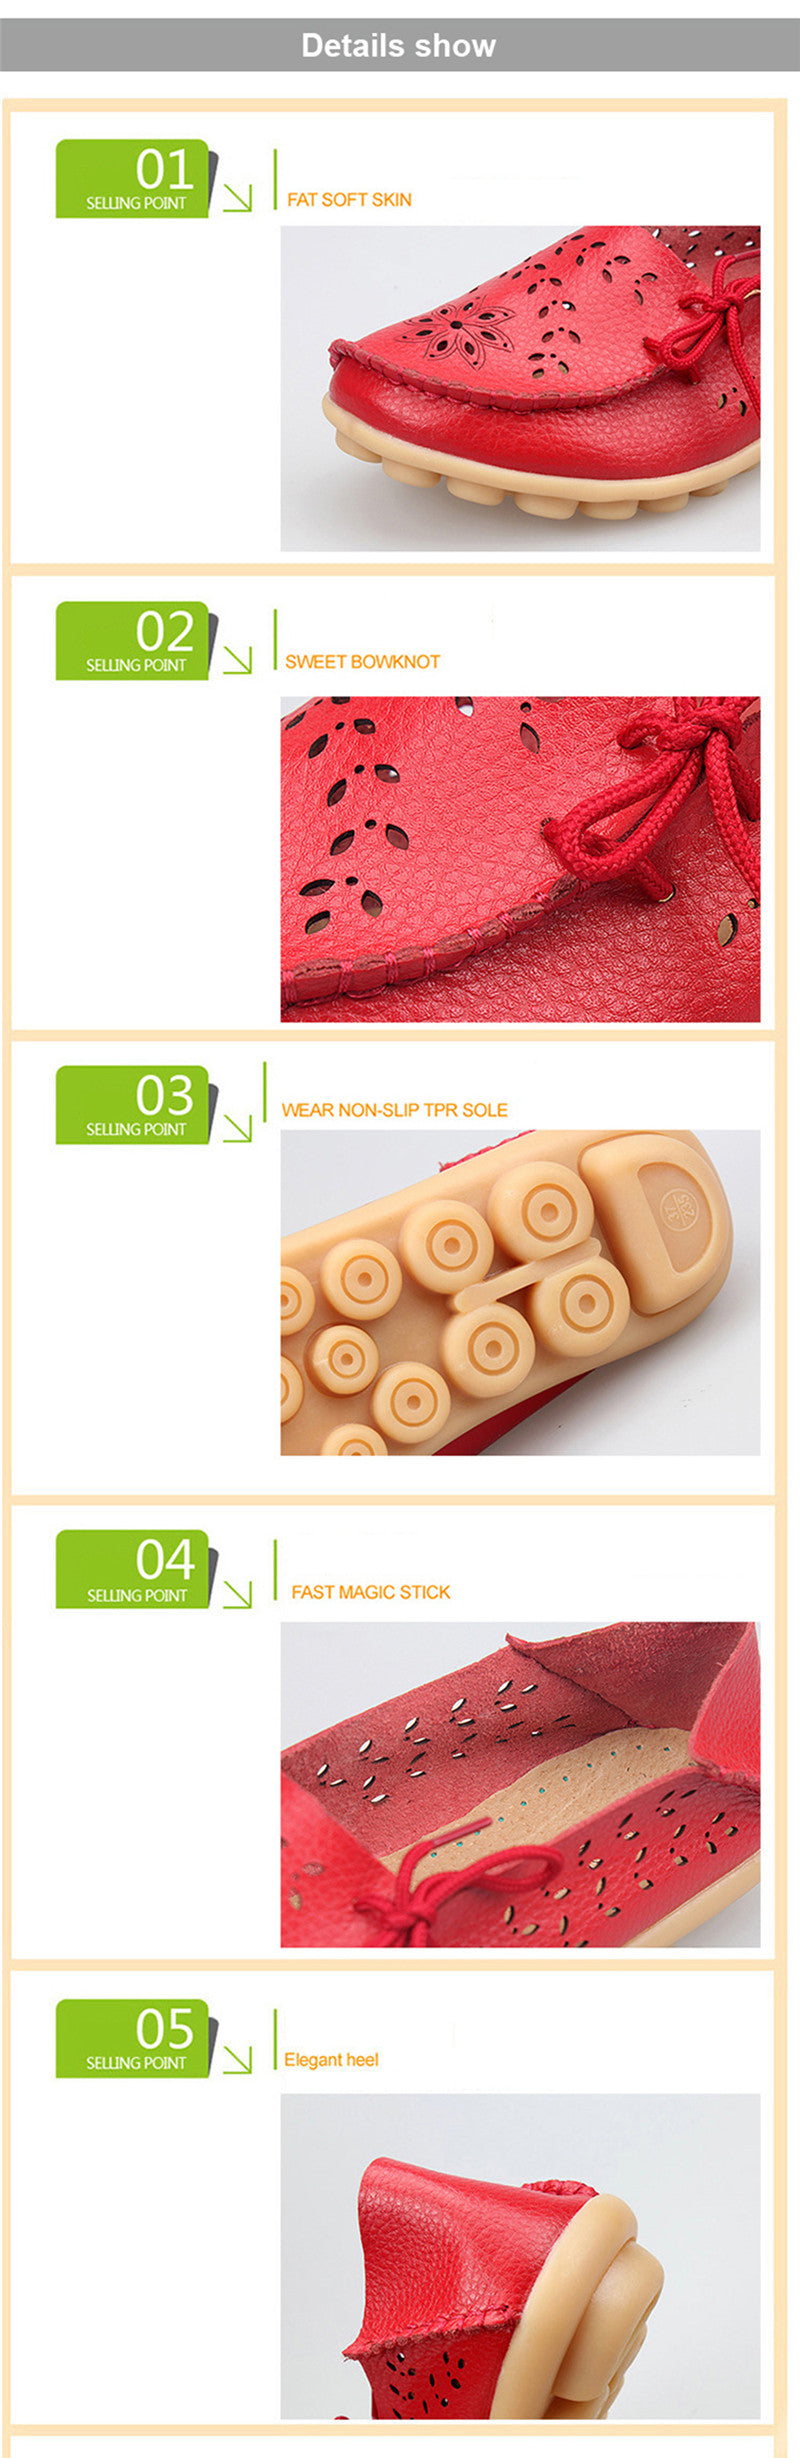 best features of the comfortable rubber sole nodule shoe with the flower leaf imprint pattern